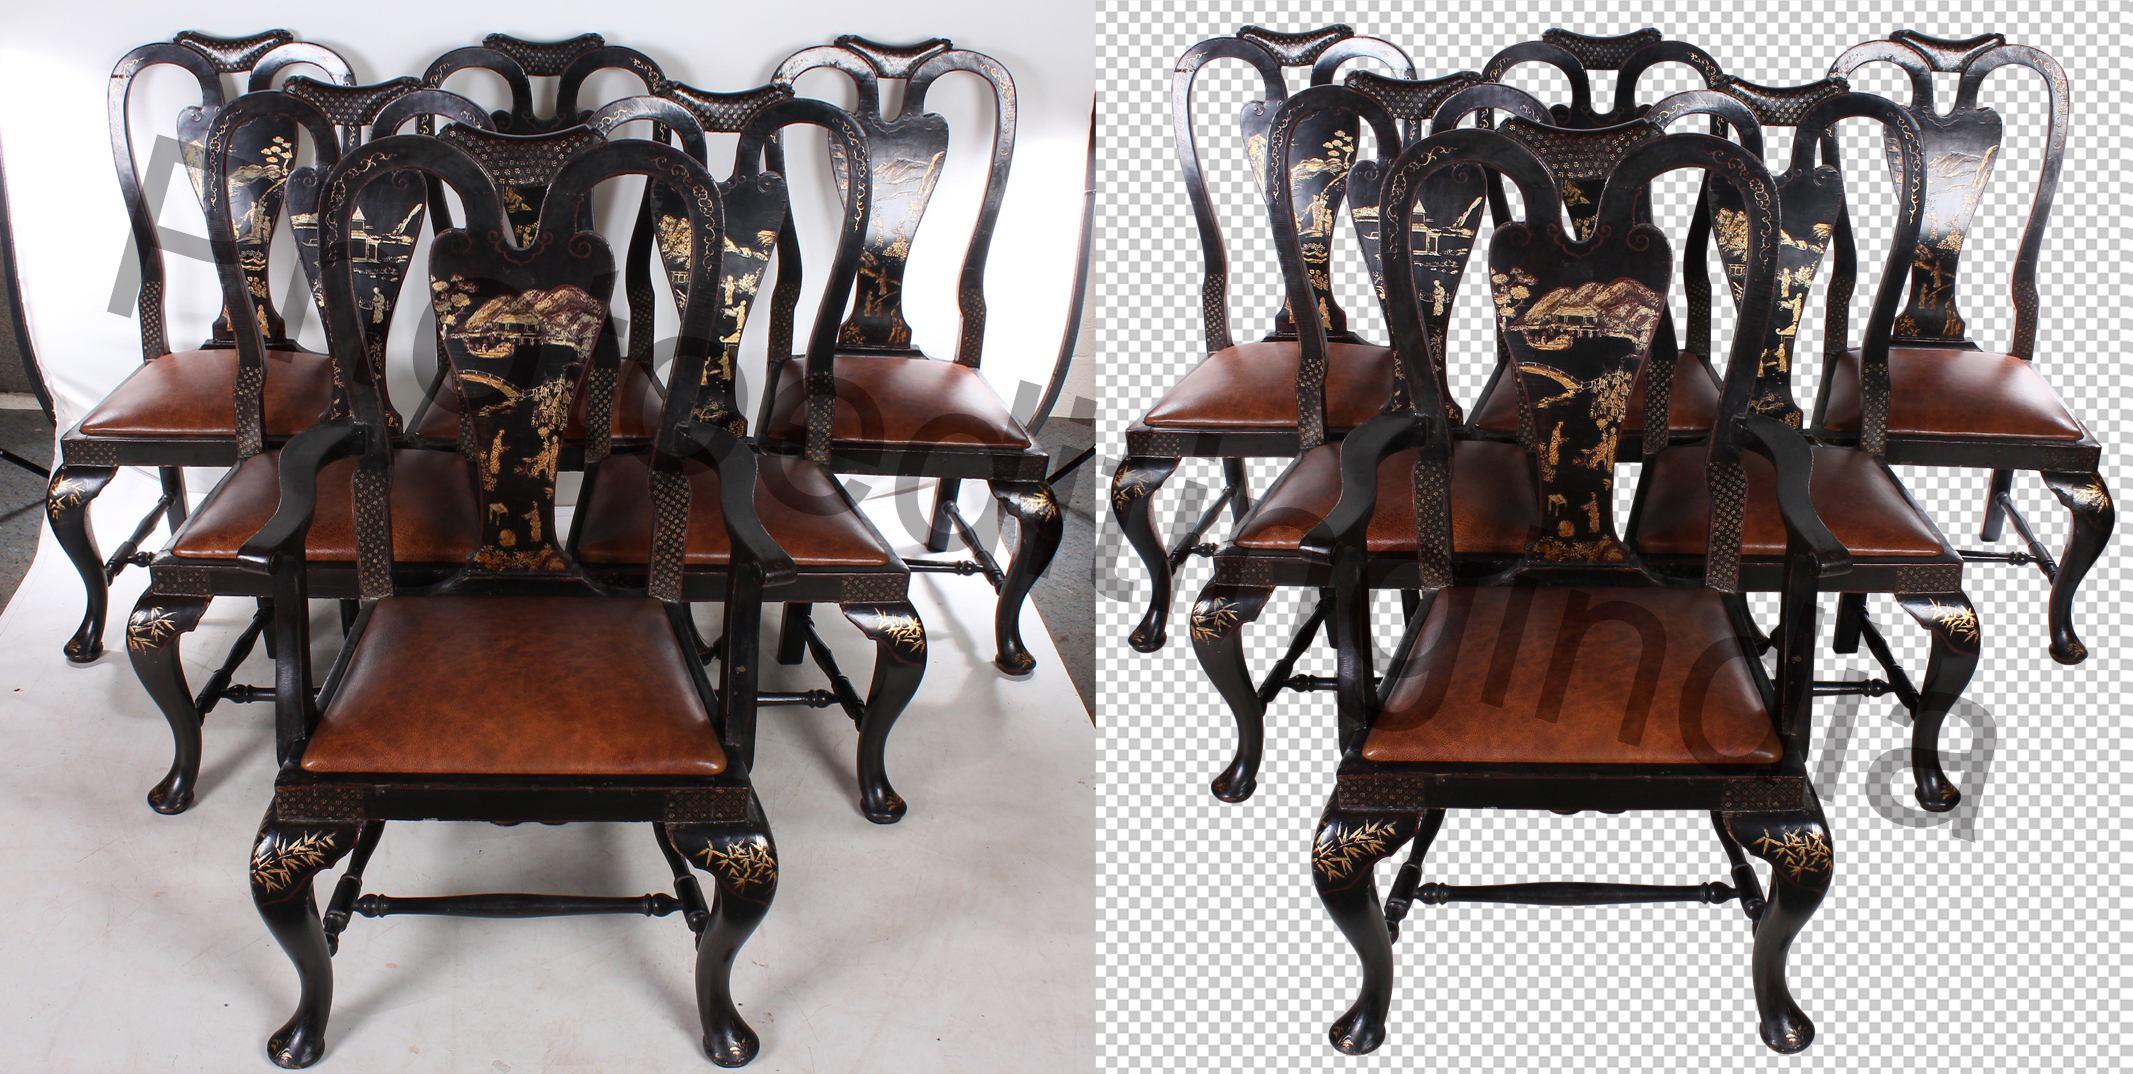 Mirror Effect Services To Enhance Product Images